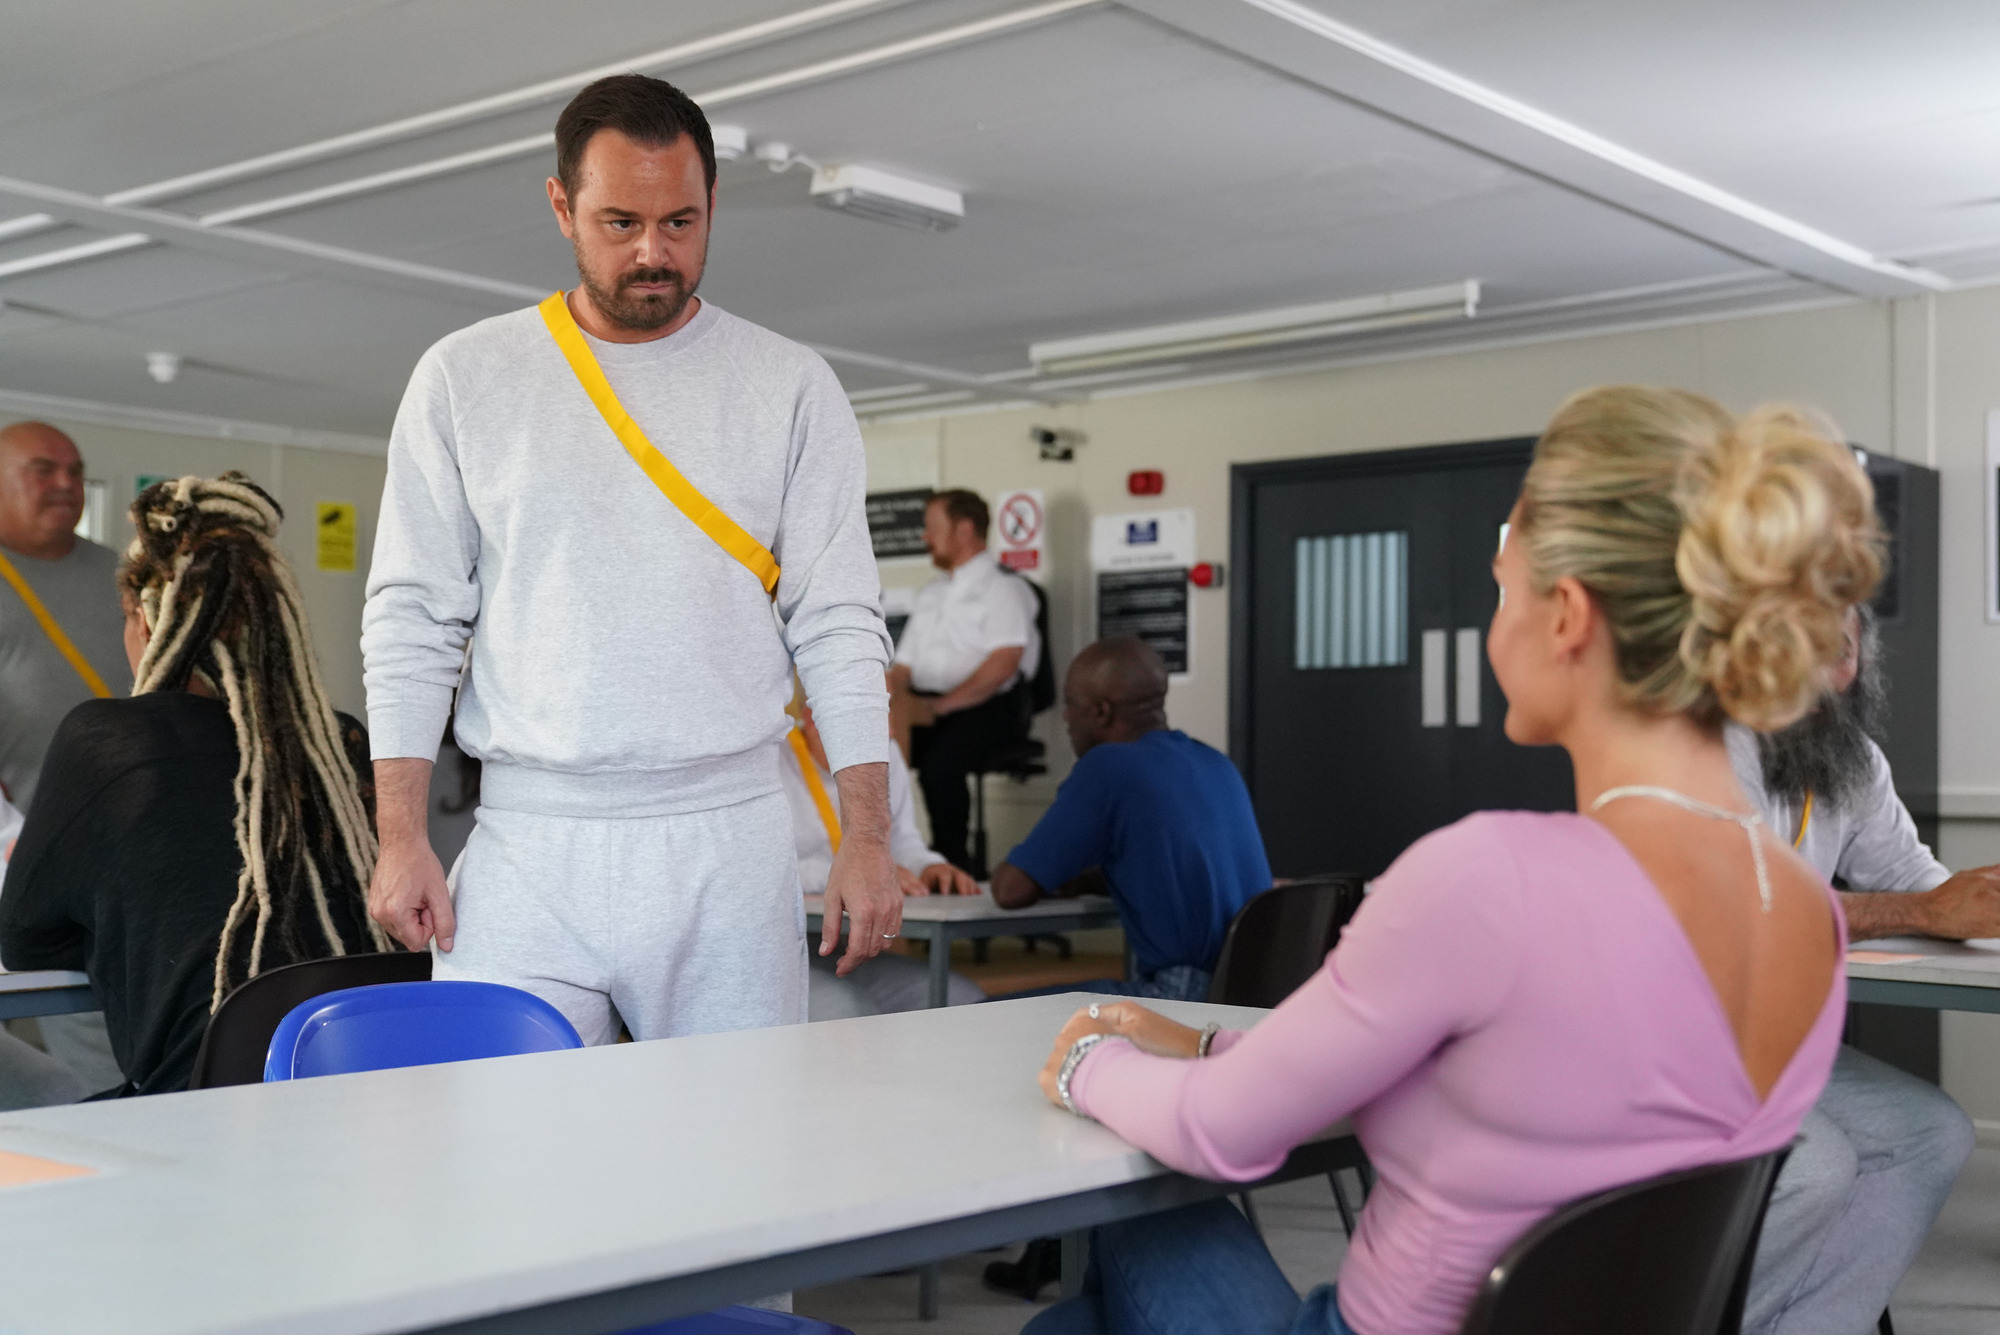 EastEnders spoilers: Mick Carter's mystery woman to save him from paedophilia ultimatum tonight?